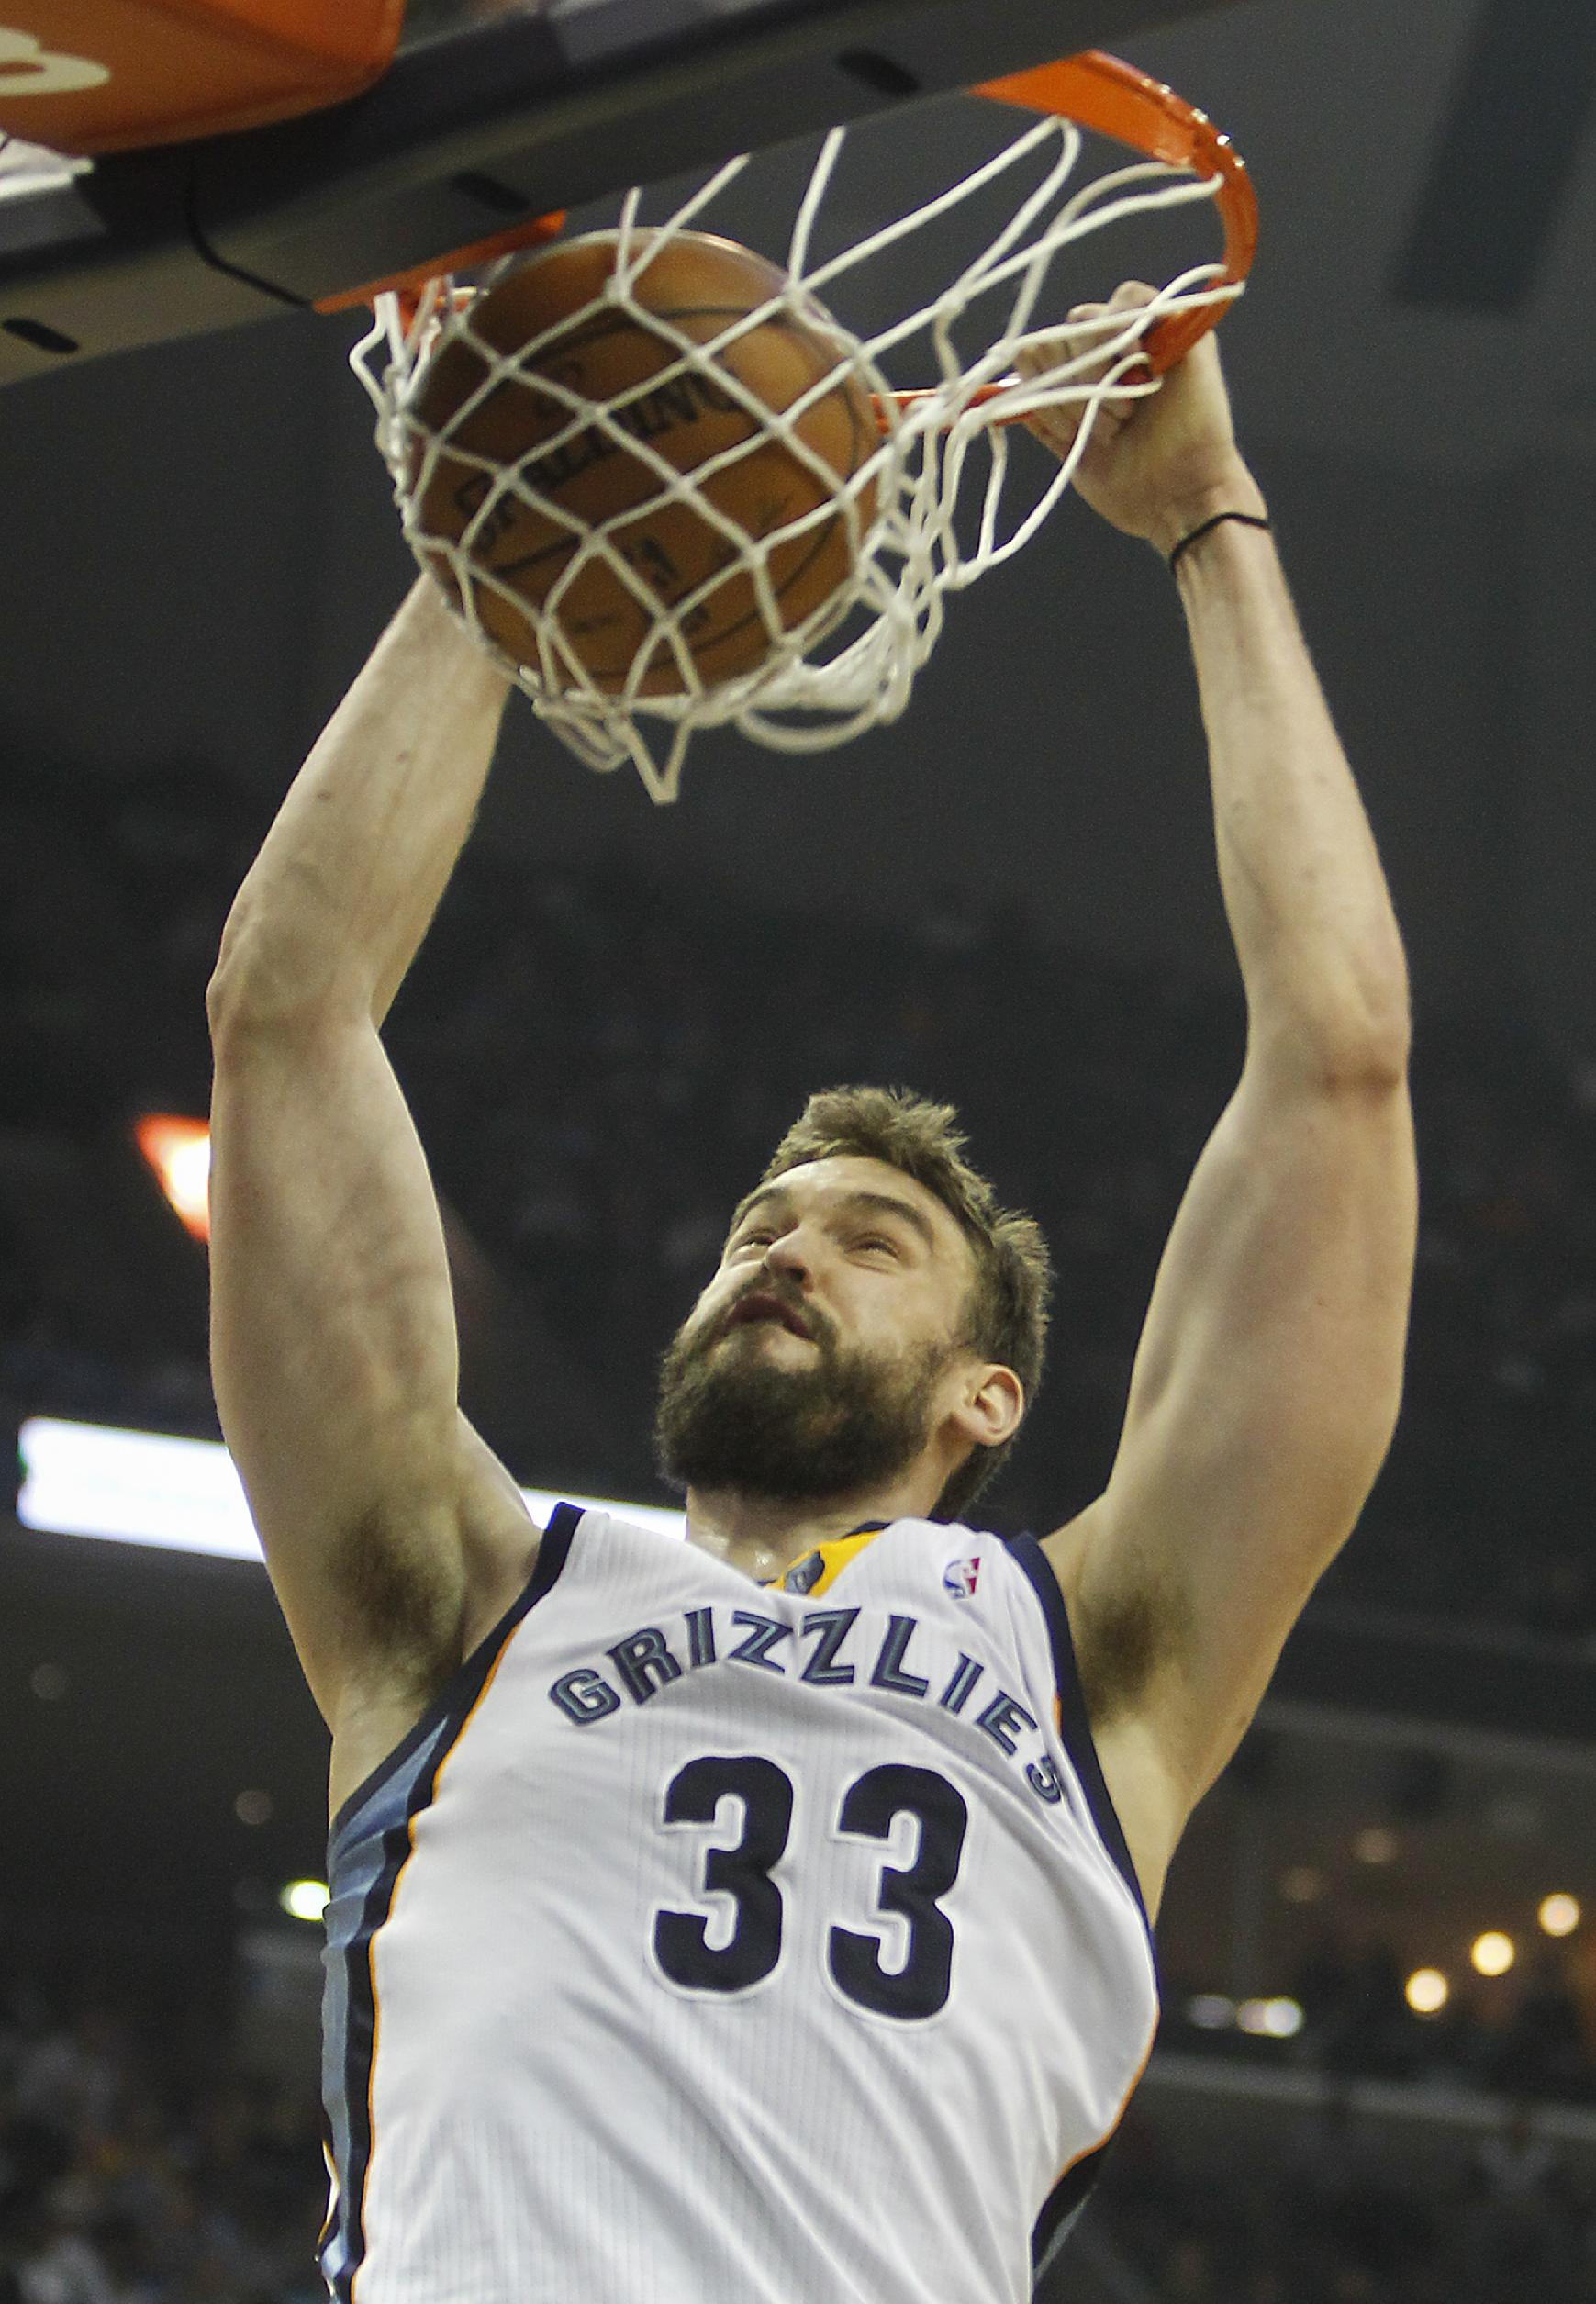 Grizzlies hold Pacers to season low, win 82-71